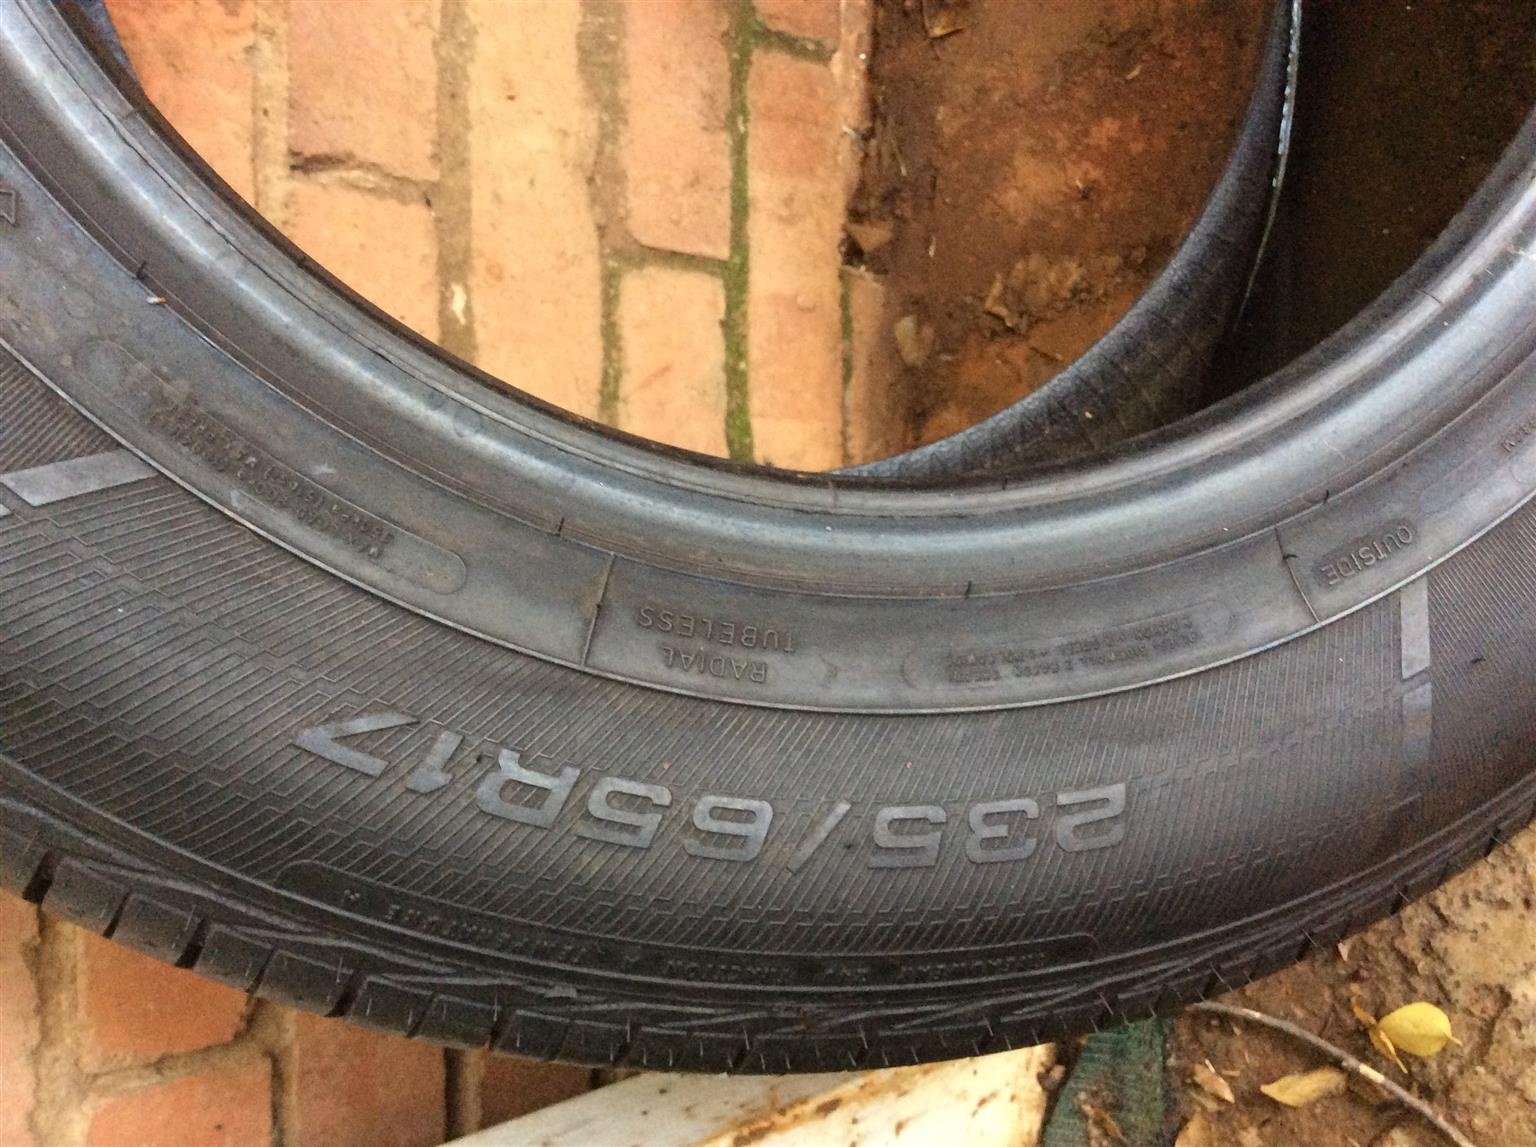 New Goodyear tyre for sale